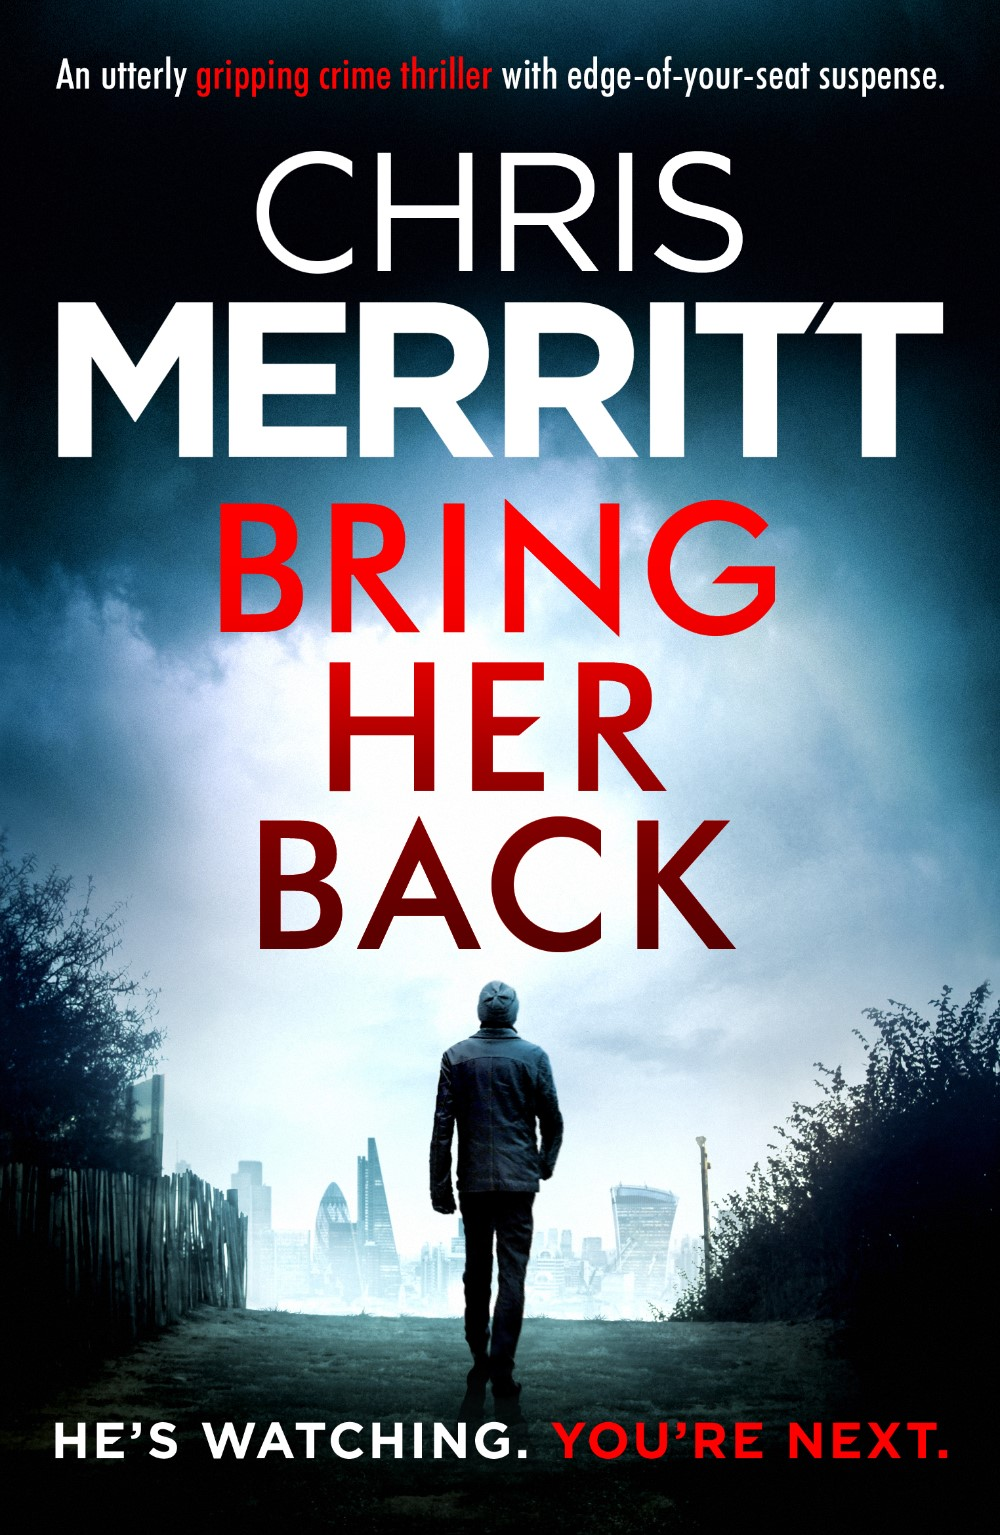 BRING HER BACK - Debut novel out 21st March 2018How far would you go to avenge the murder of someone you love? Detective Inspector Zac Boateng of London's Met Police still grieves for his daughter Amelia, whose killer was never caught.Five years after her death, Boateng investigates the brutal murder of a Police informant. Granted access to the Met's secret archives, he discovers a new lead on Amelia.When Boateng learns that his colleagues may have obstructed the inquiry into her death, he sets out alone to find her killer.Meanwhile the informant's murderer is hunting his next victim, and Boateng must solve both crimes before anyone else dies...Get your ebook or print copy here:UK http://amzn.to/2BIuBtN US http://amzn.to/2CeVczx iStore: https://tinyurl.com/yca5626e